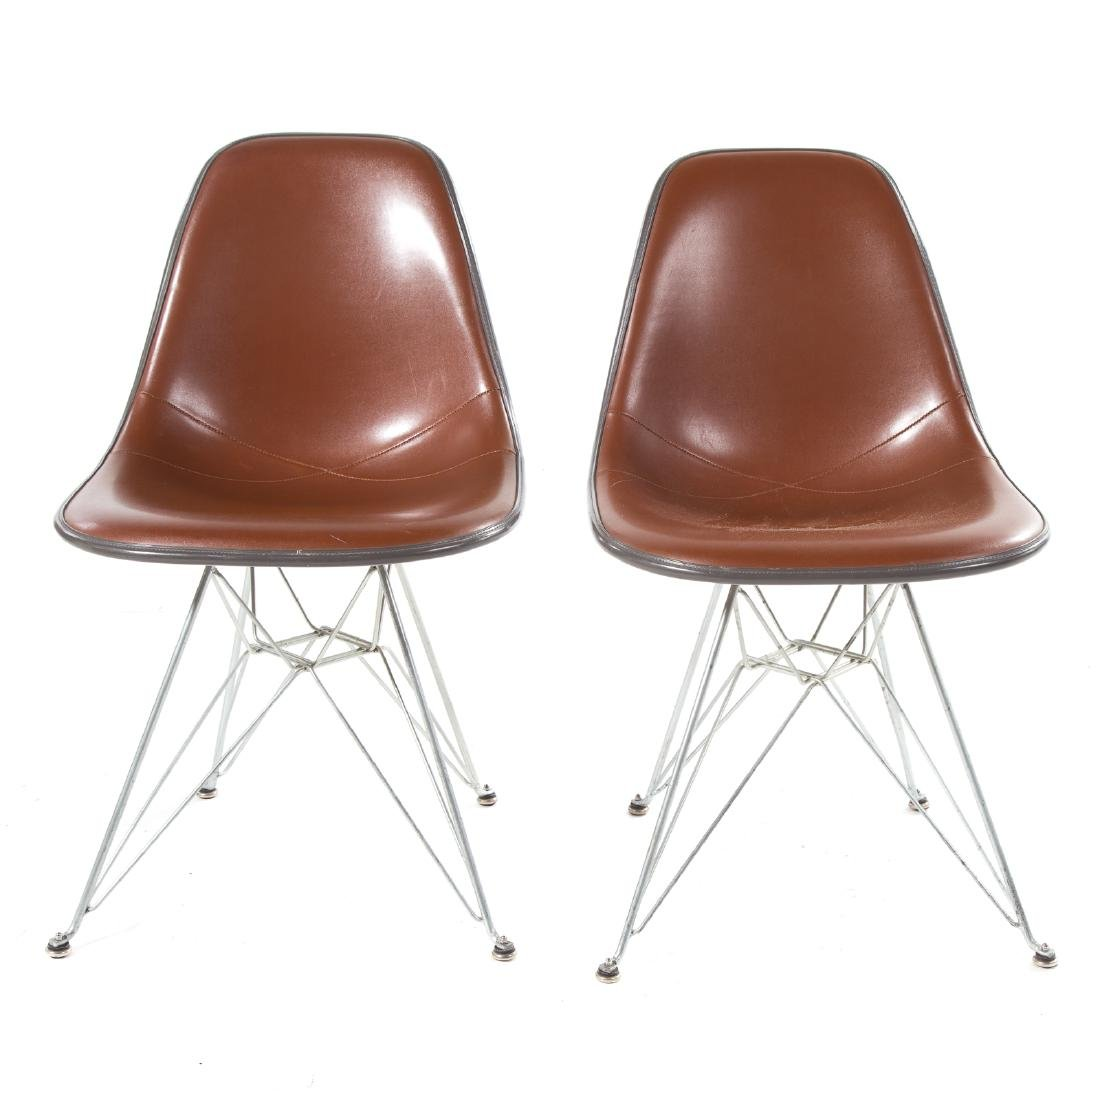 Pair Eames Herman Miller style Eiffel base chairs